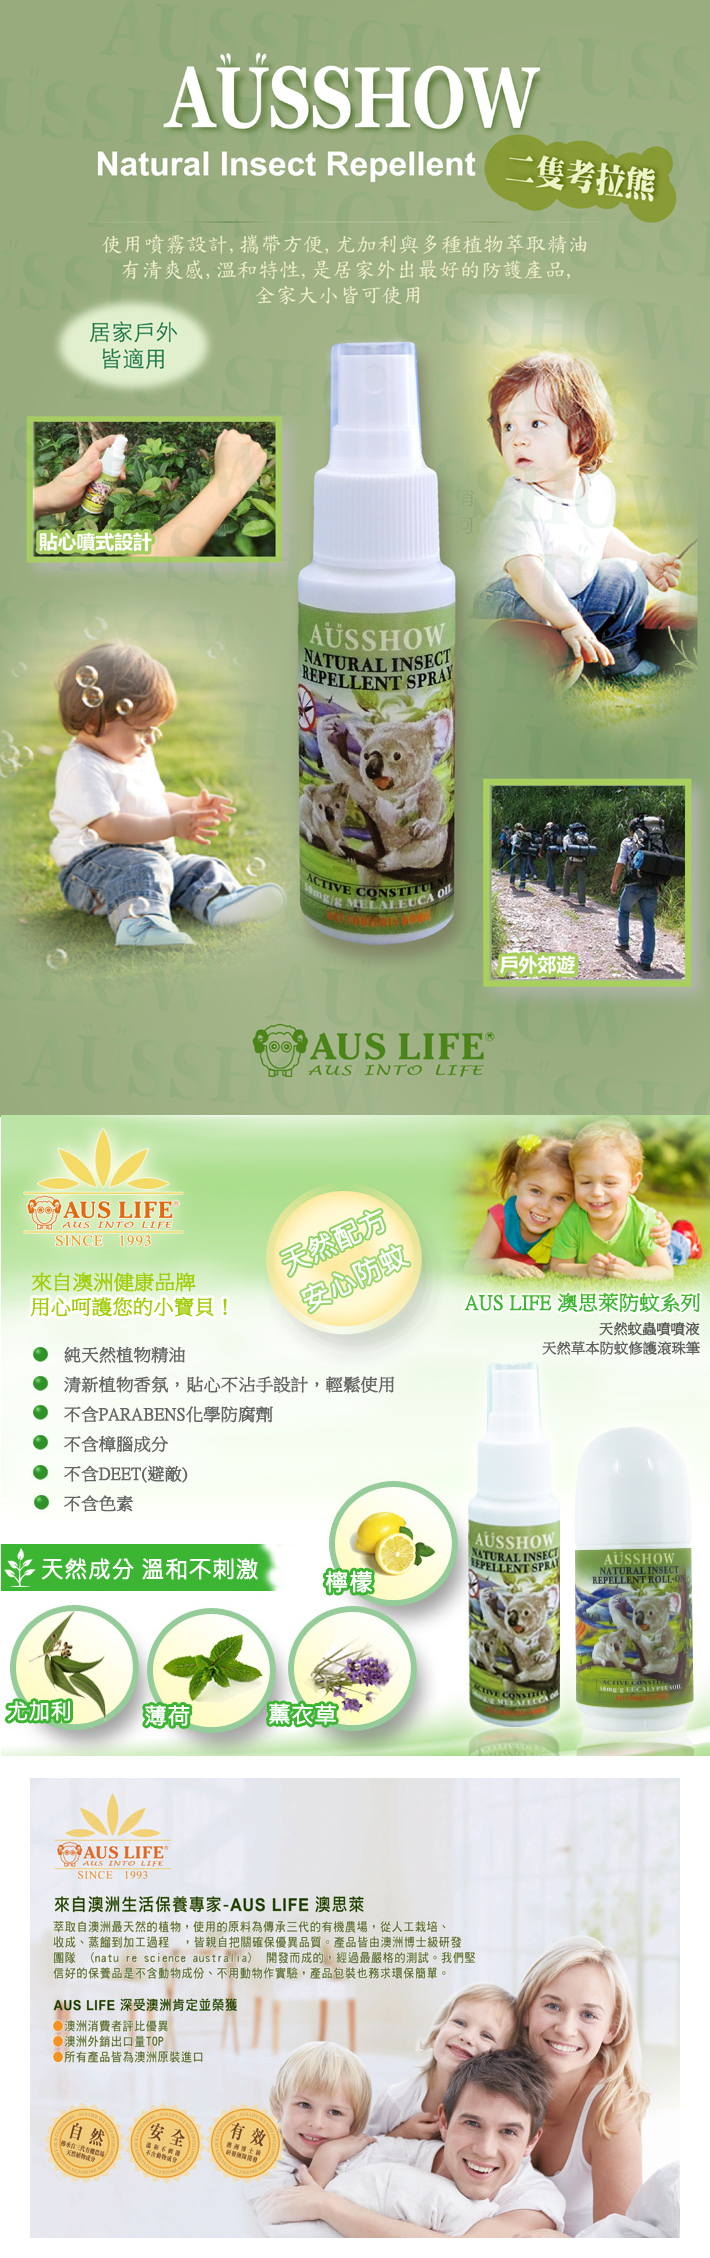 https://www.s3.com.tw/photo/s3/bodycare/AUSLIFE/D082409.jpg